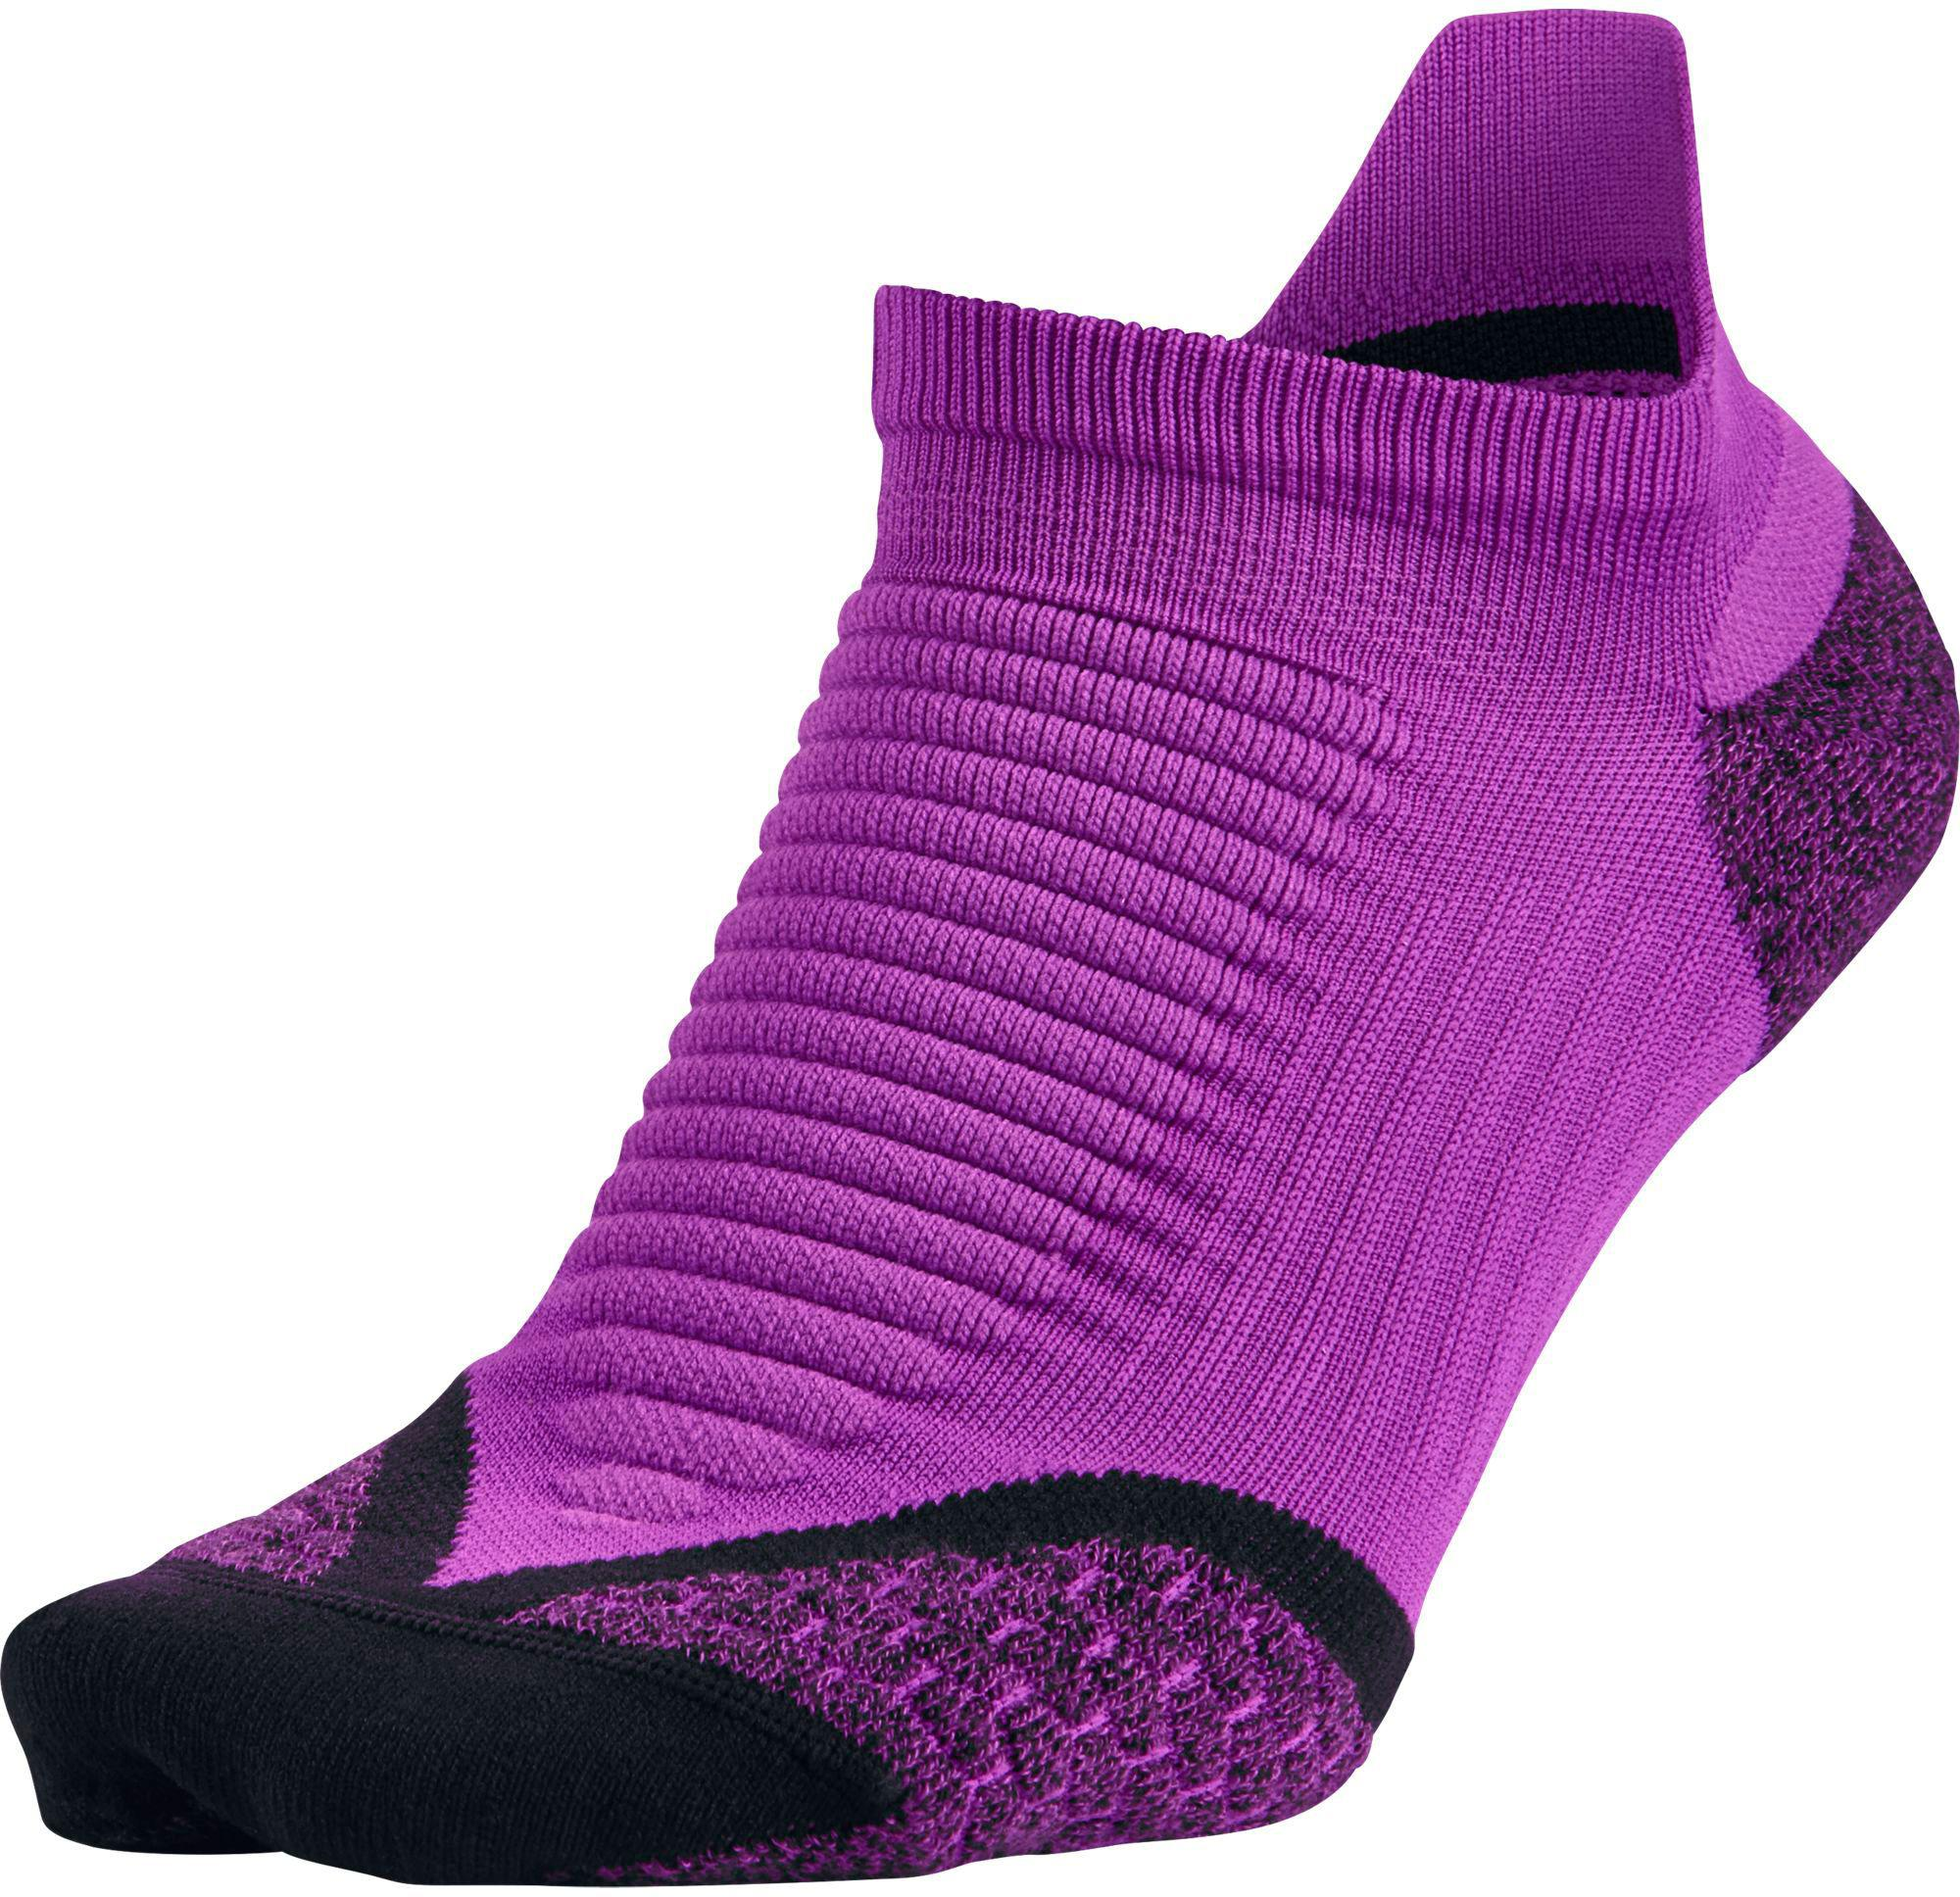 Nike Elite Cushioned No Show Tab Vivid Purple/Black Running Socks